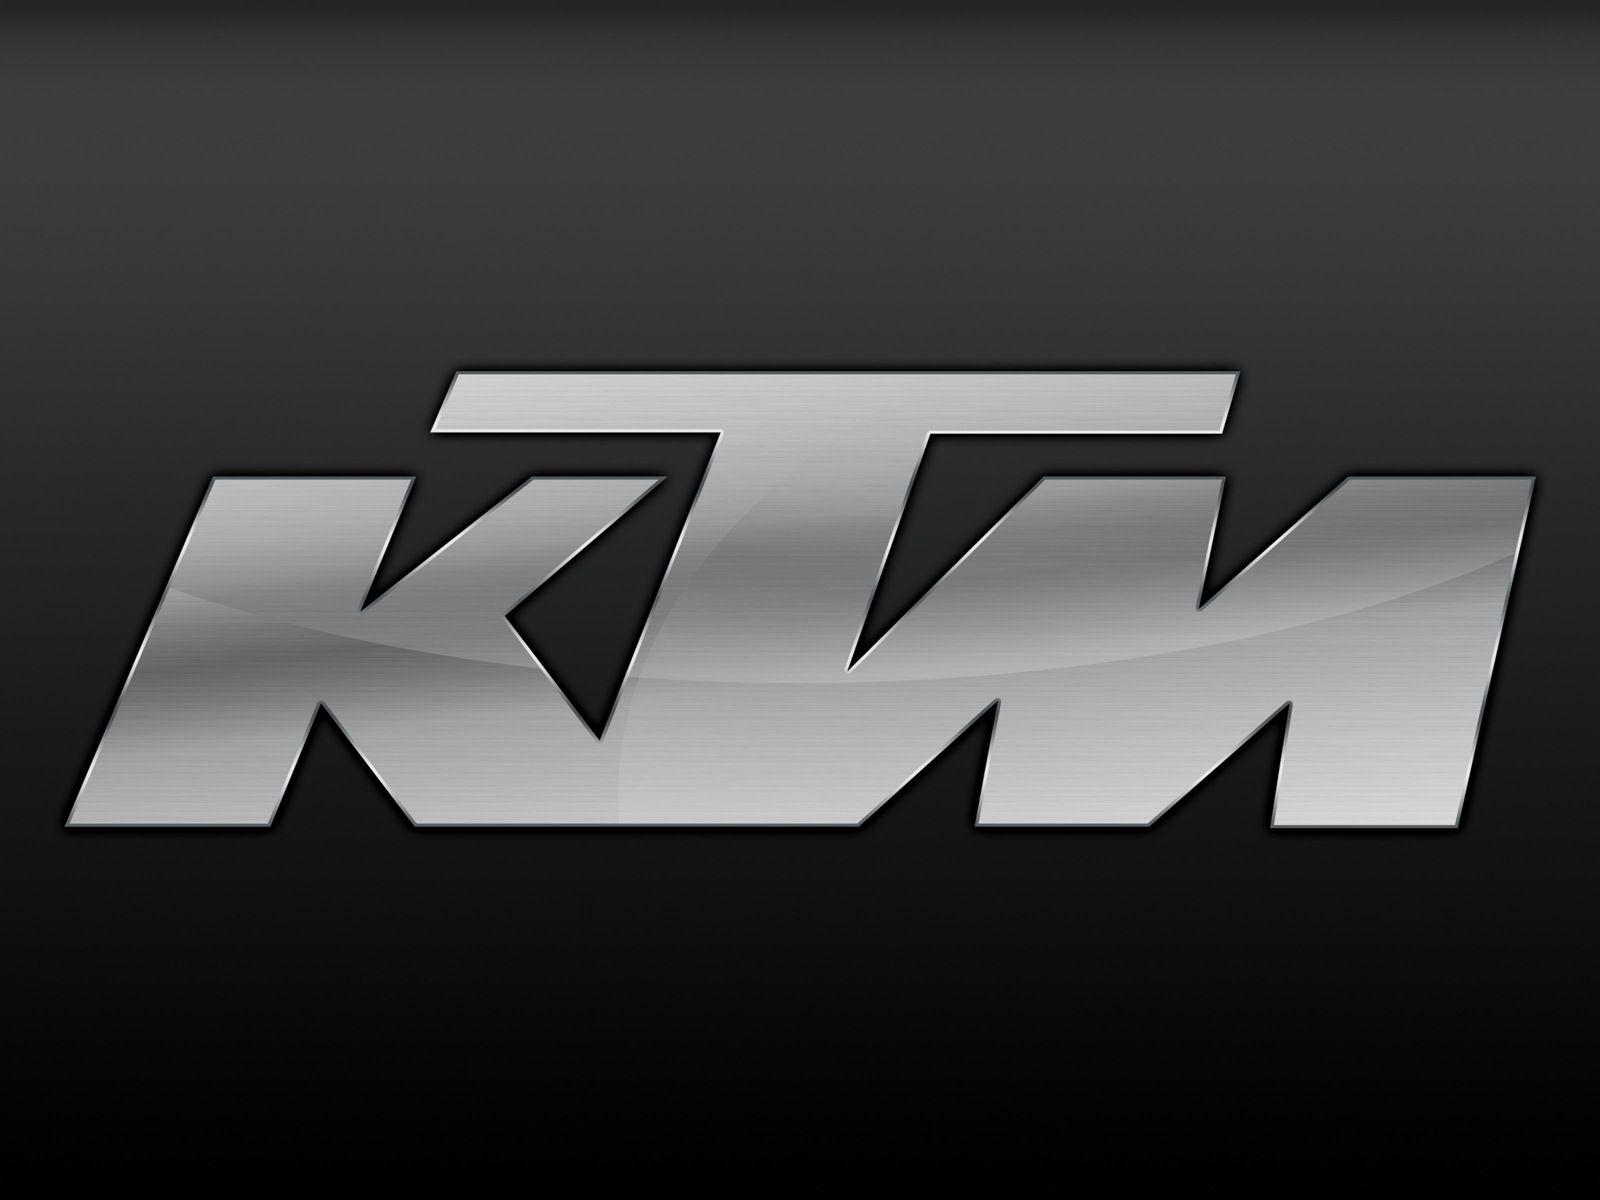 KTM Logo Wallpapers 30047 1600x1200 px ~ HDWallSource